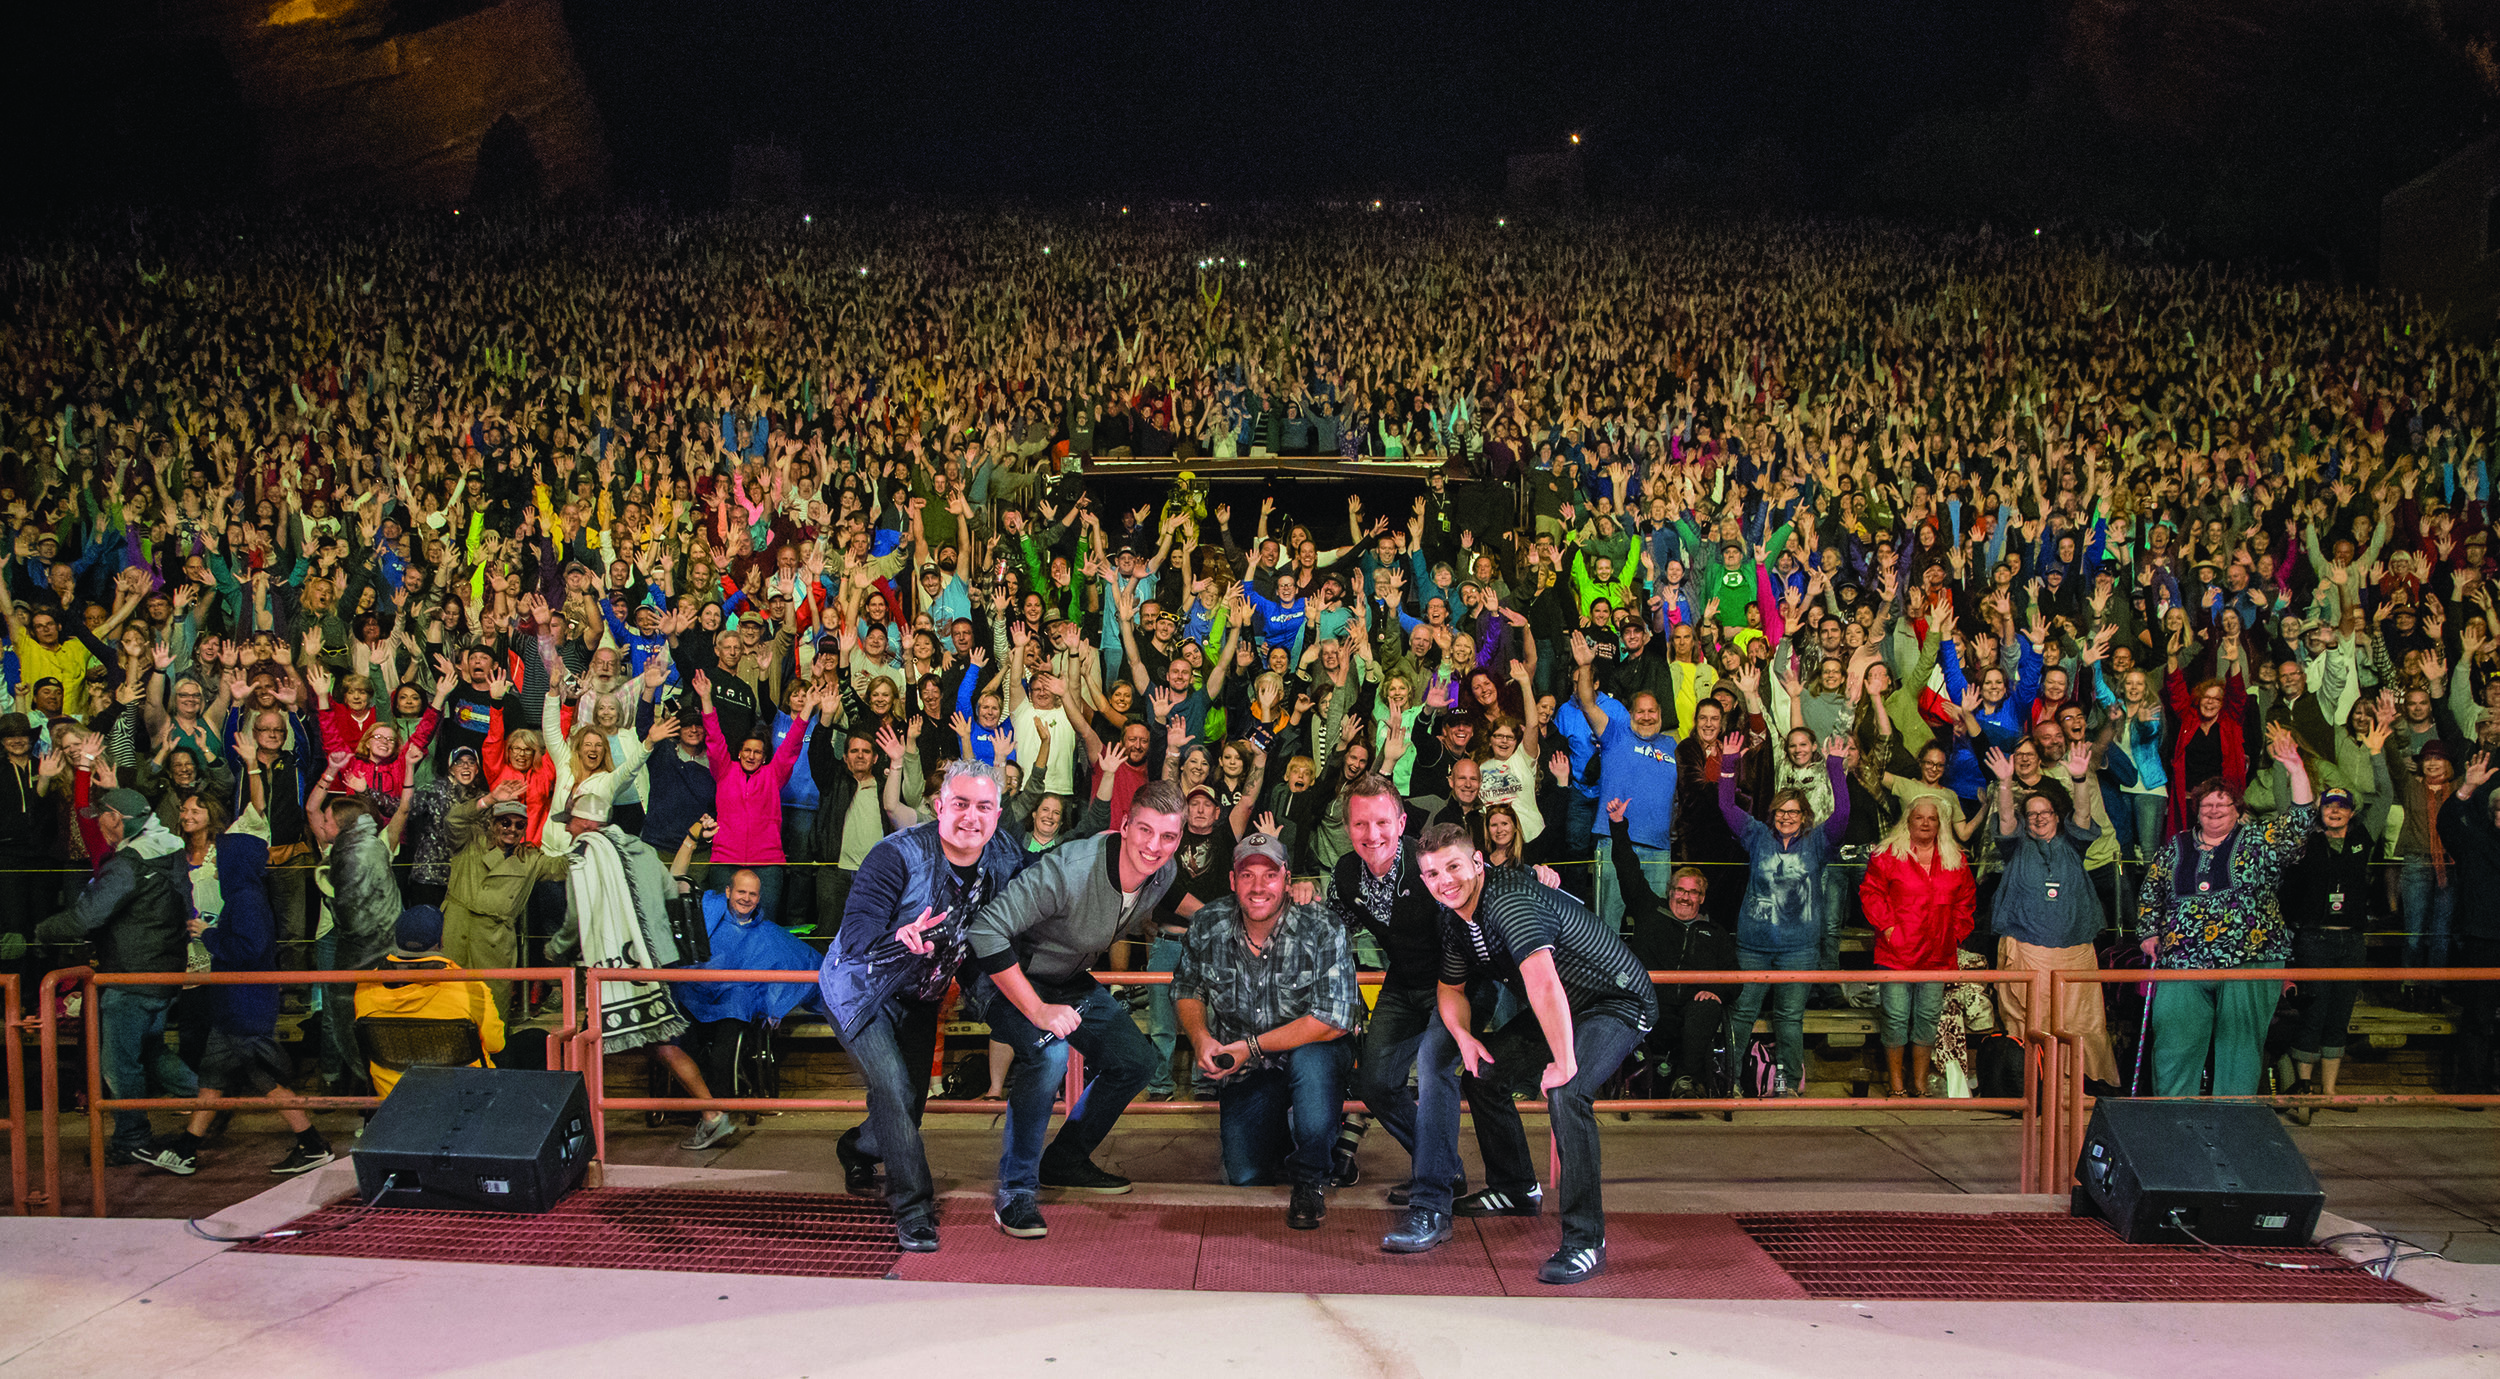 Face has filled the seats at Red Rocks, one of the greatest venues in the world.